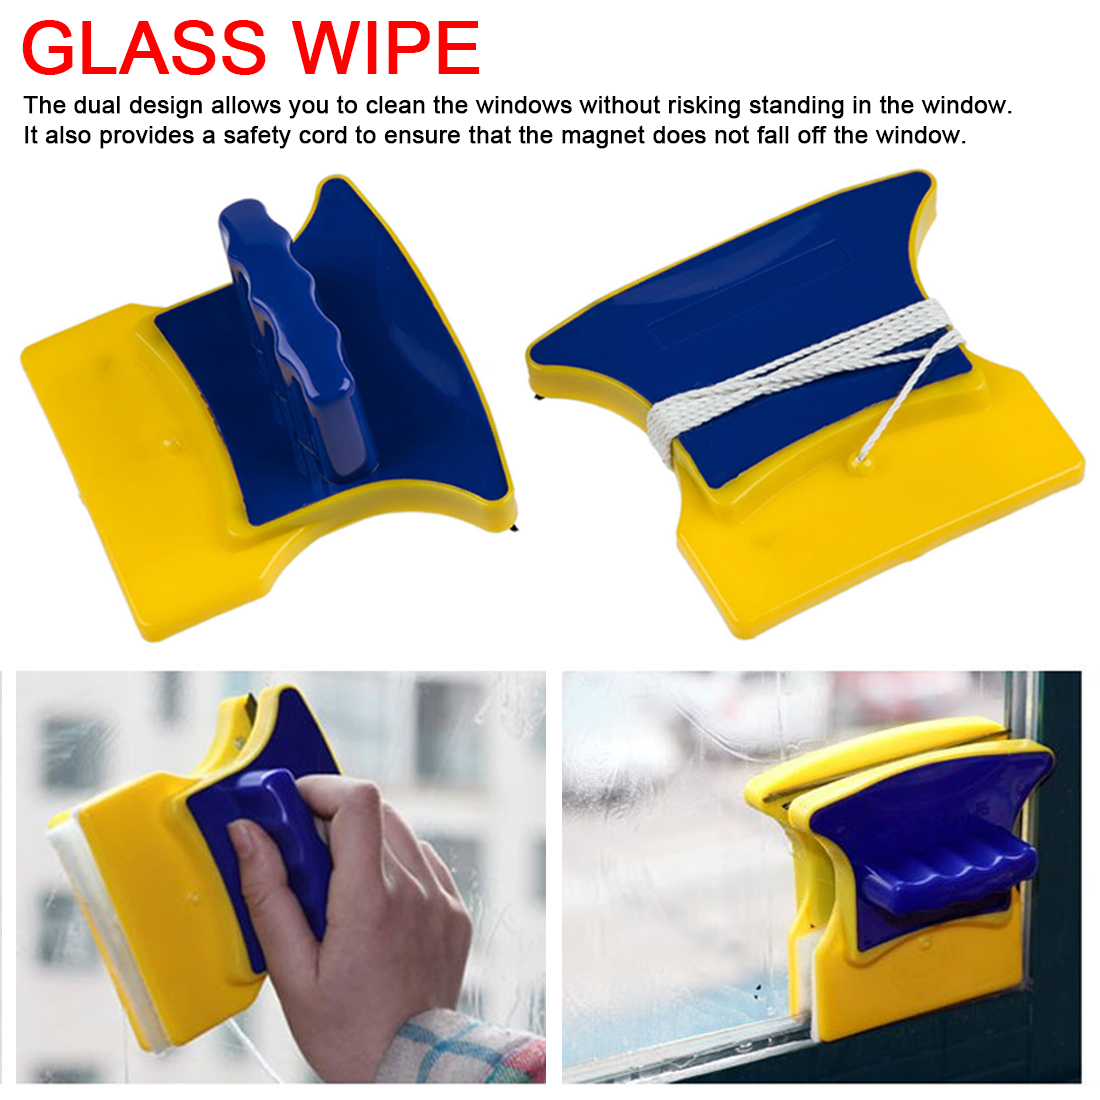 Household Cleaning Tools Magnetic Window Cleaner Brush for Washing Windows Magnetic Brush for Washing Glasses